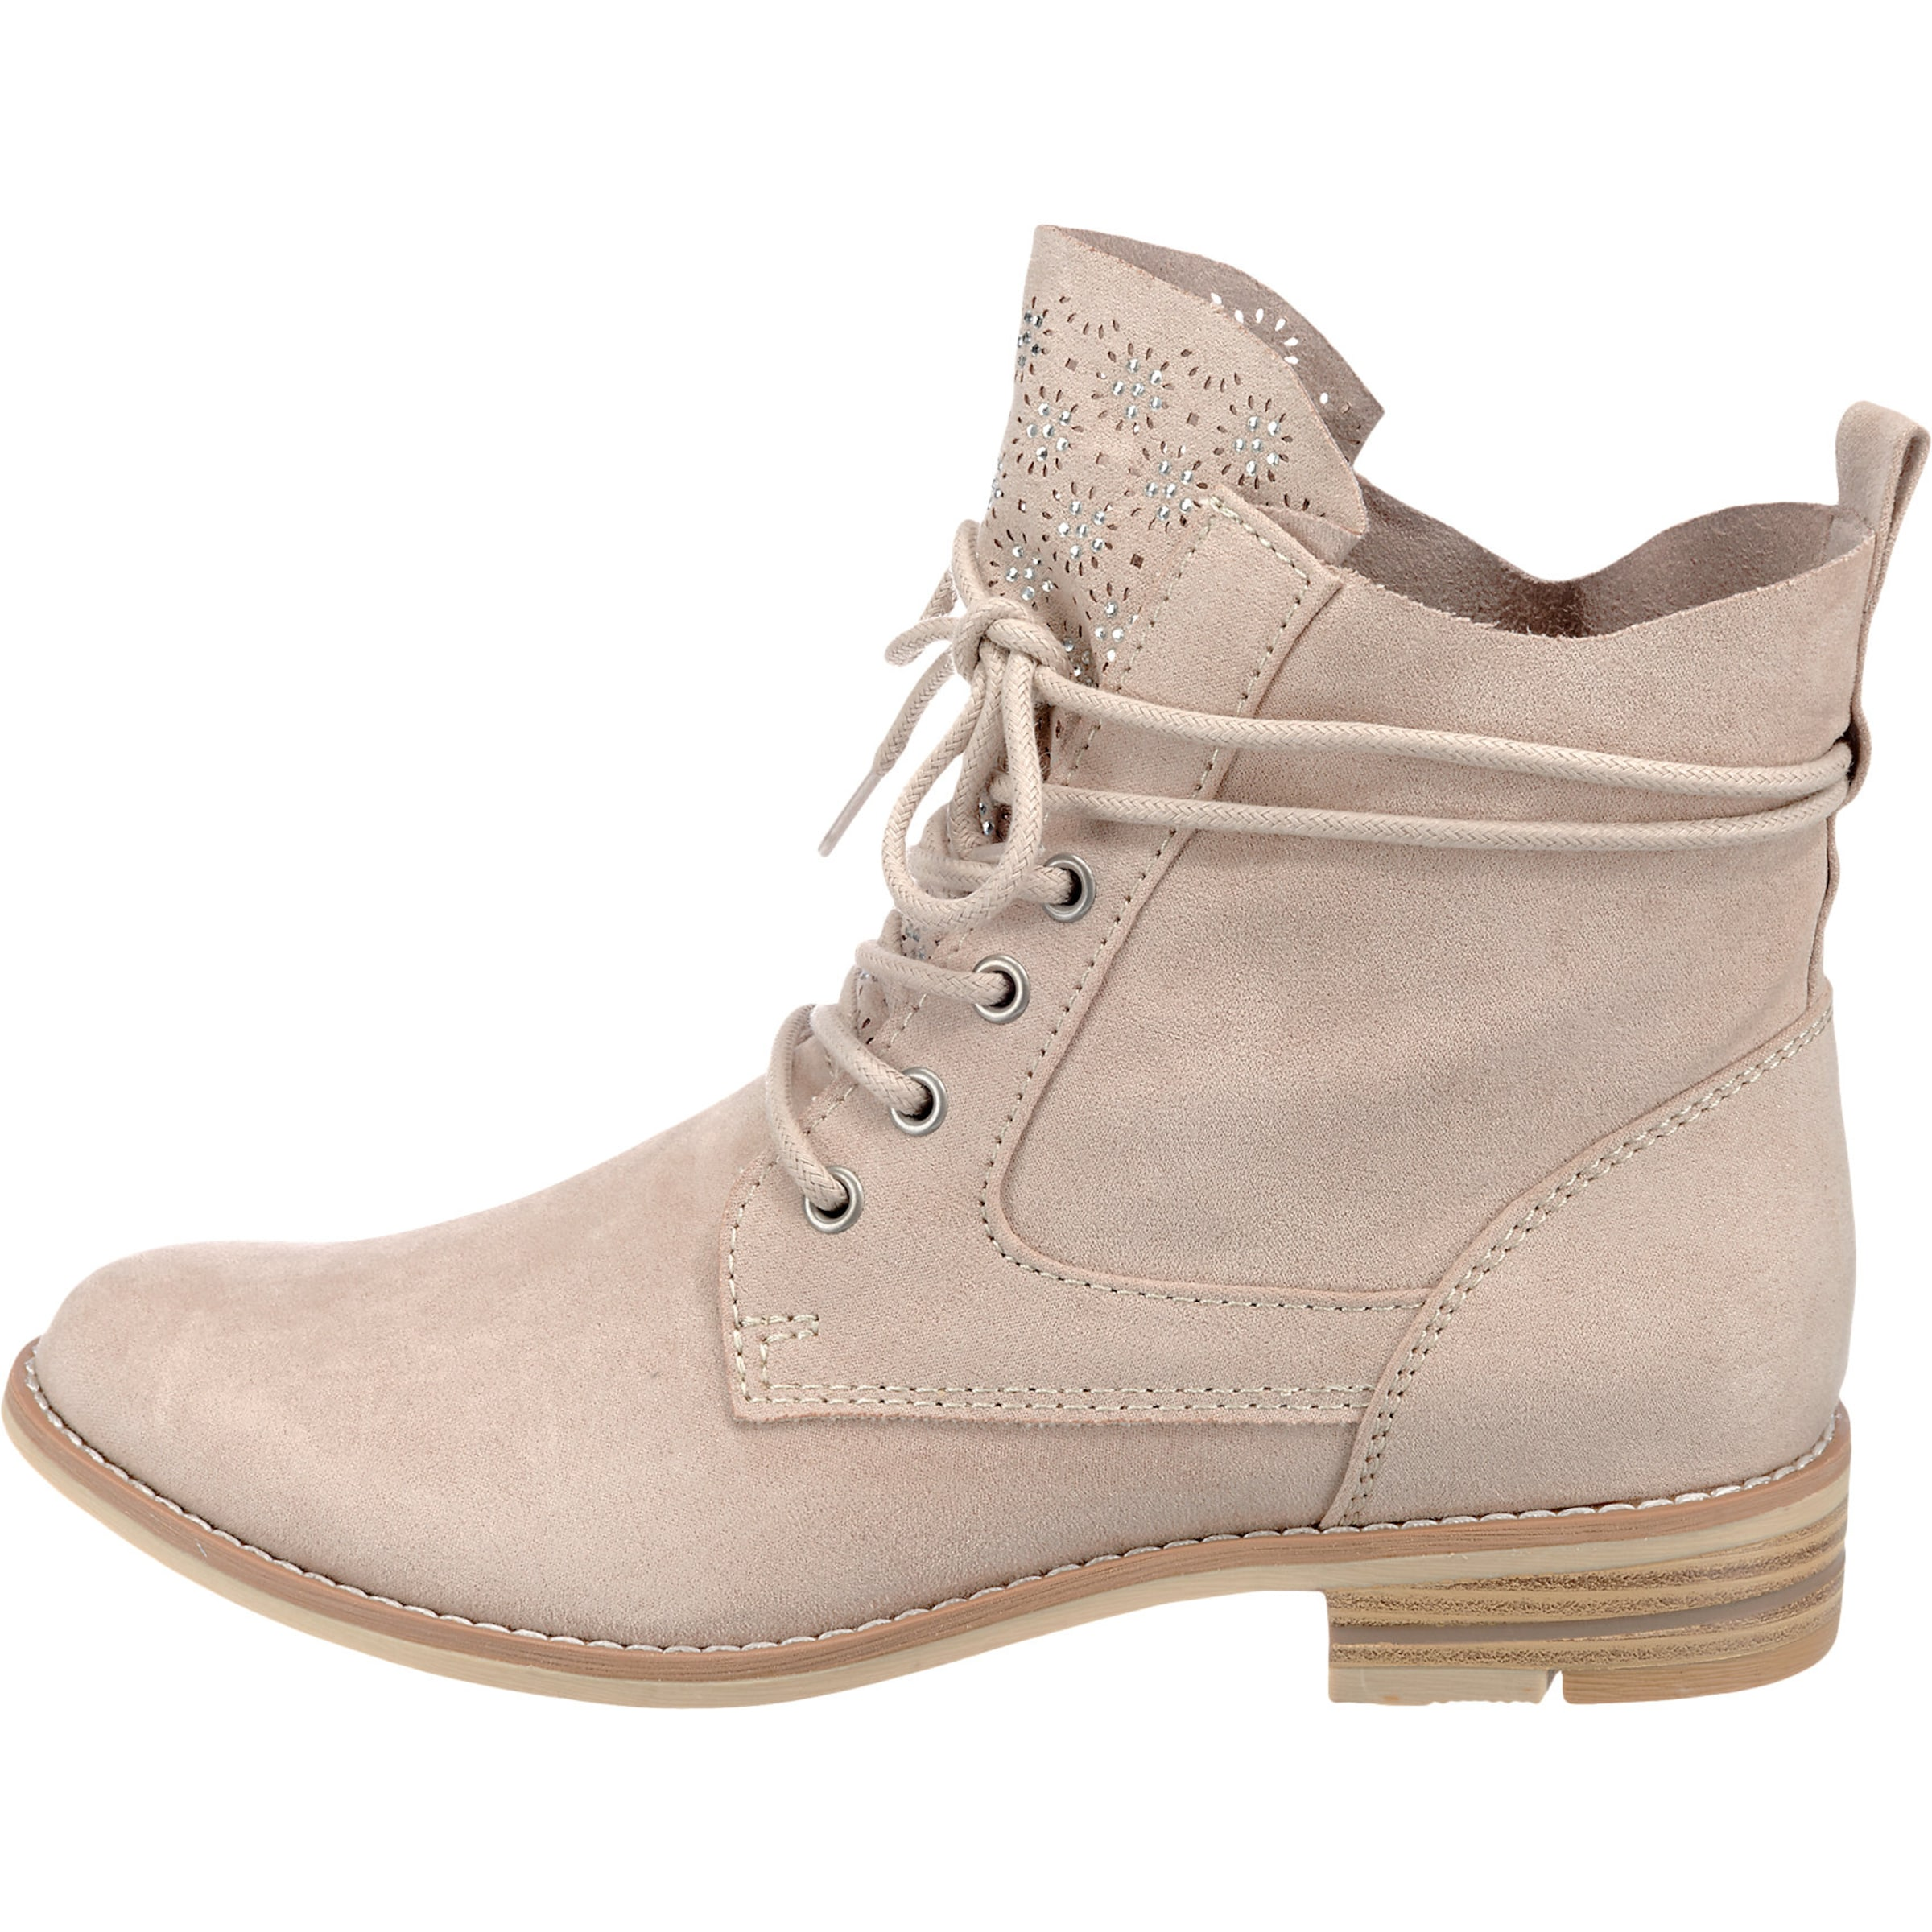 Puder In Tozzi Marco Marco Tozzi In Schnürstiefel Puder Schnürstiefel 8knP0Ow